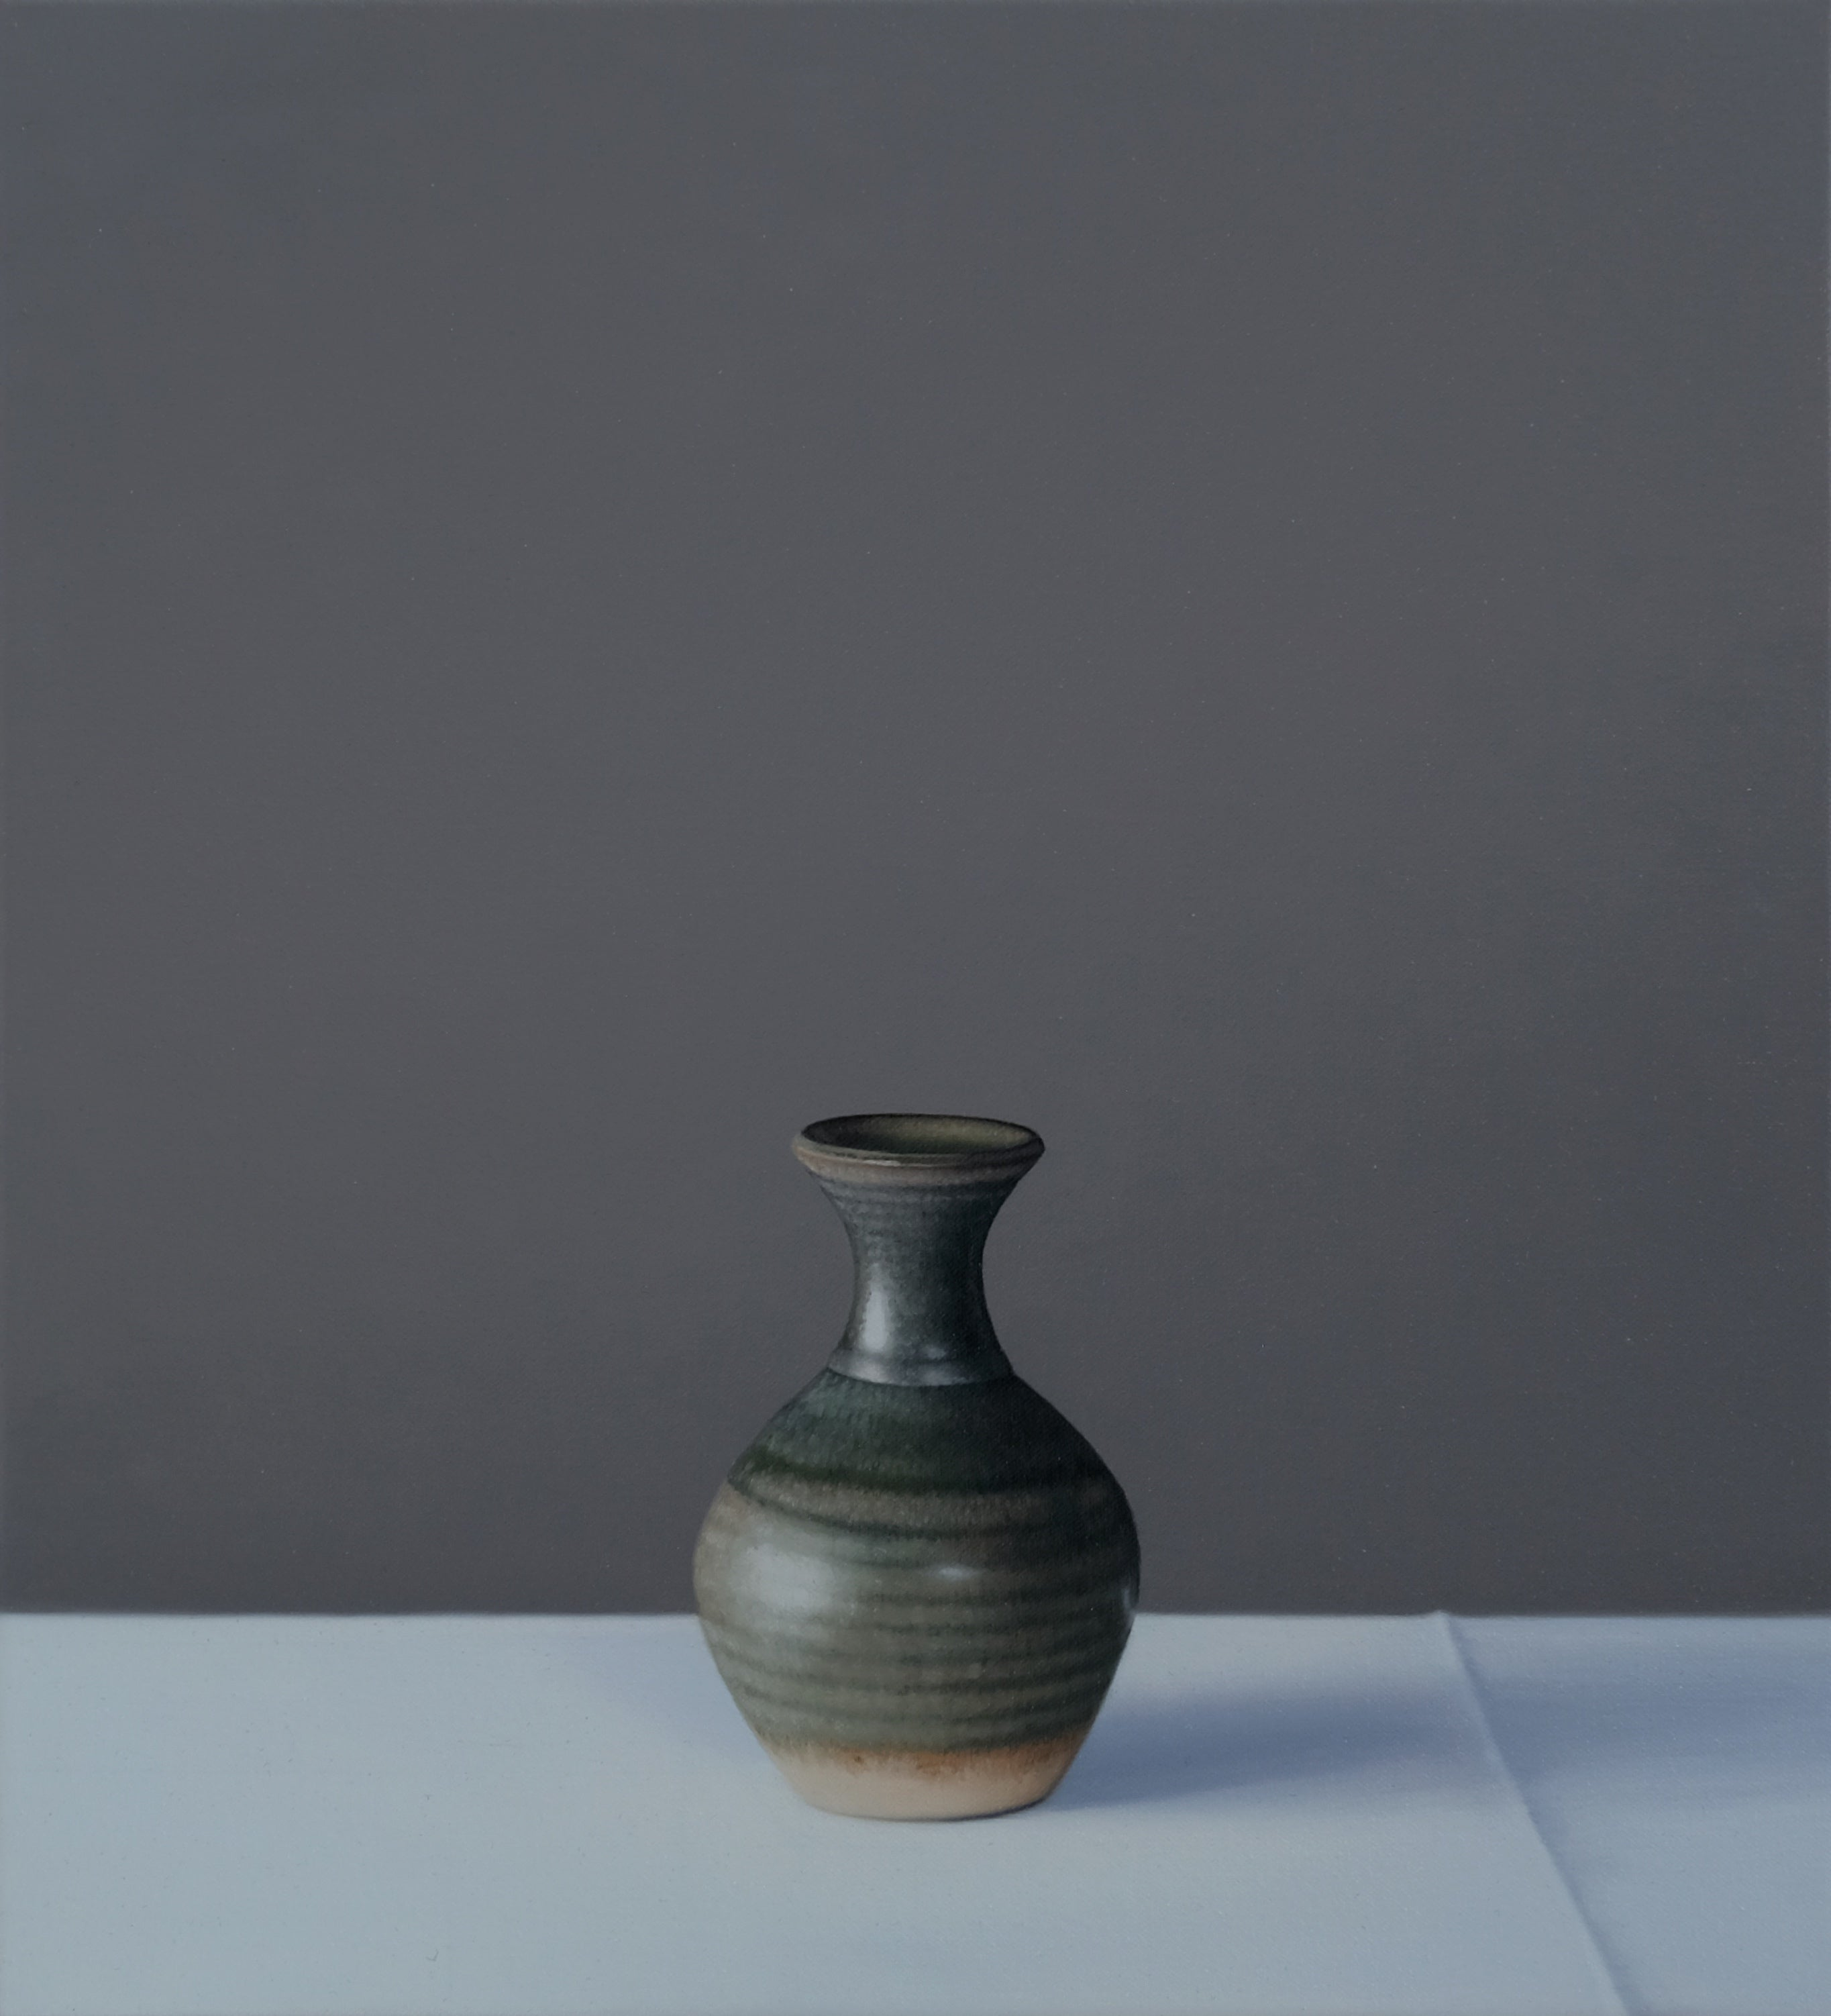 Still Life of Small Green Vase